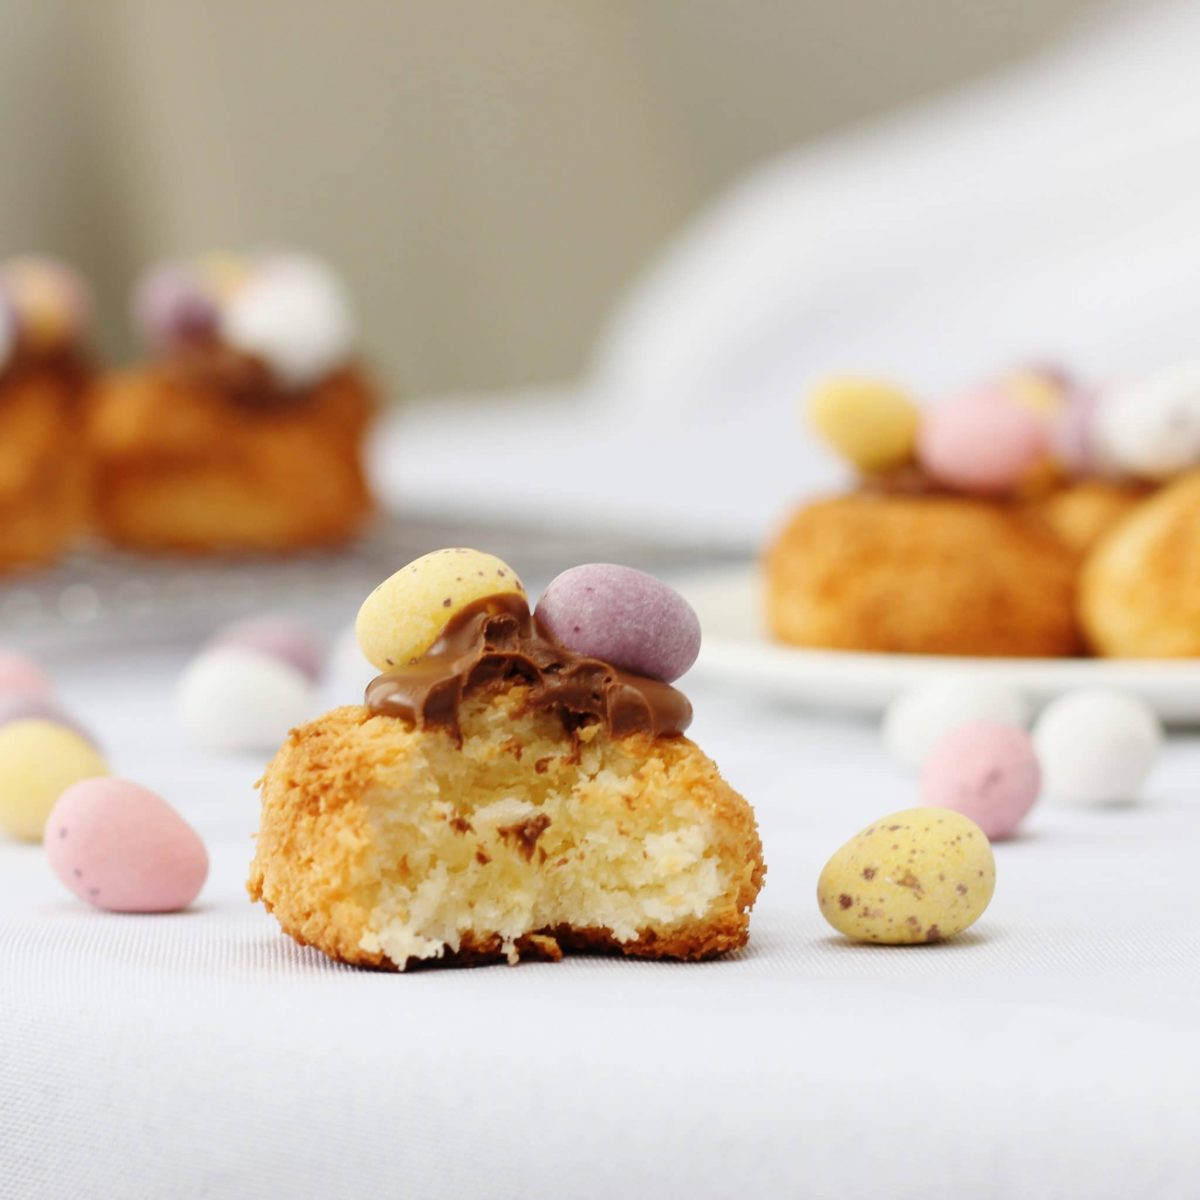 Coconut Macaroons topped with melted chocolate and mini eggs